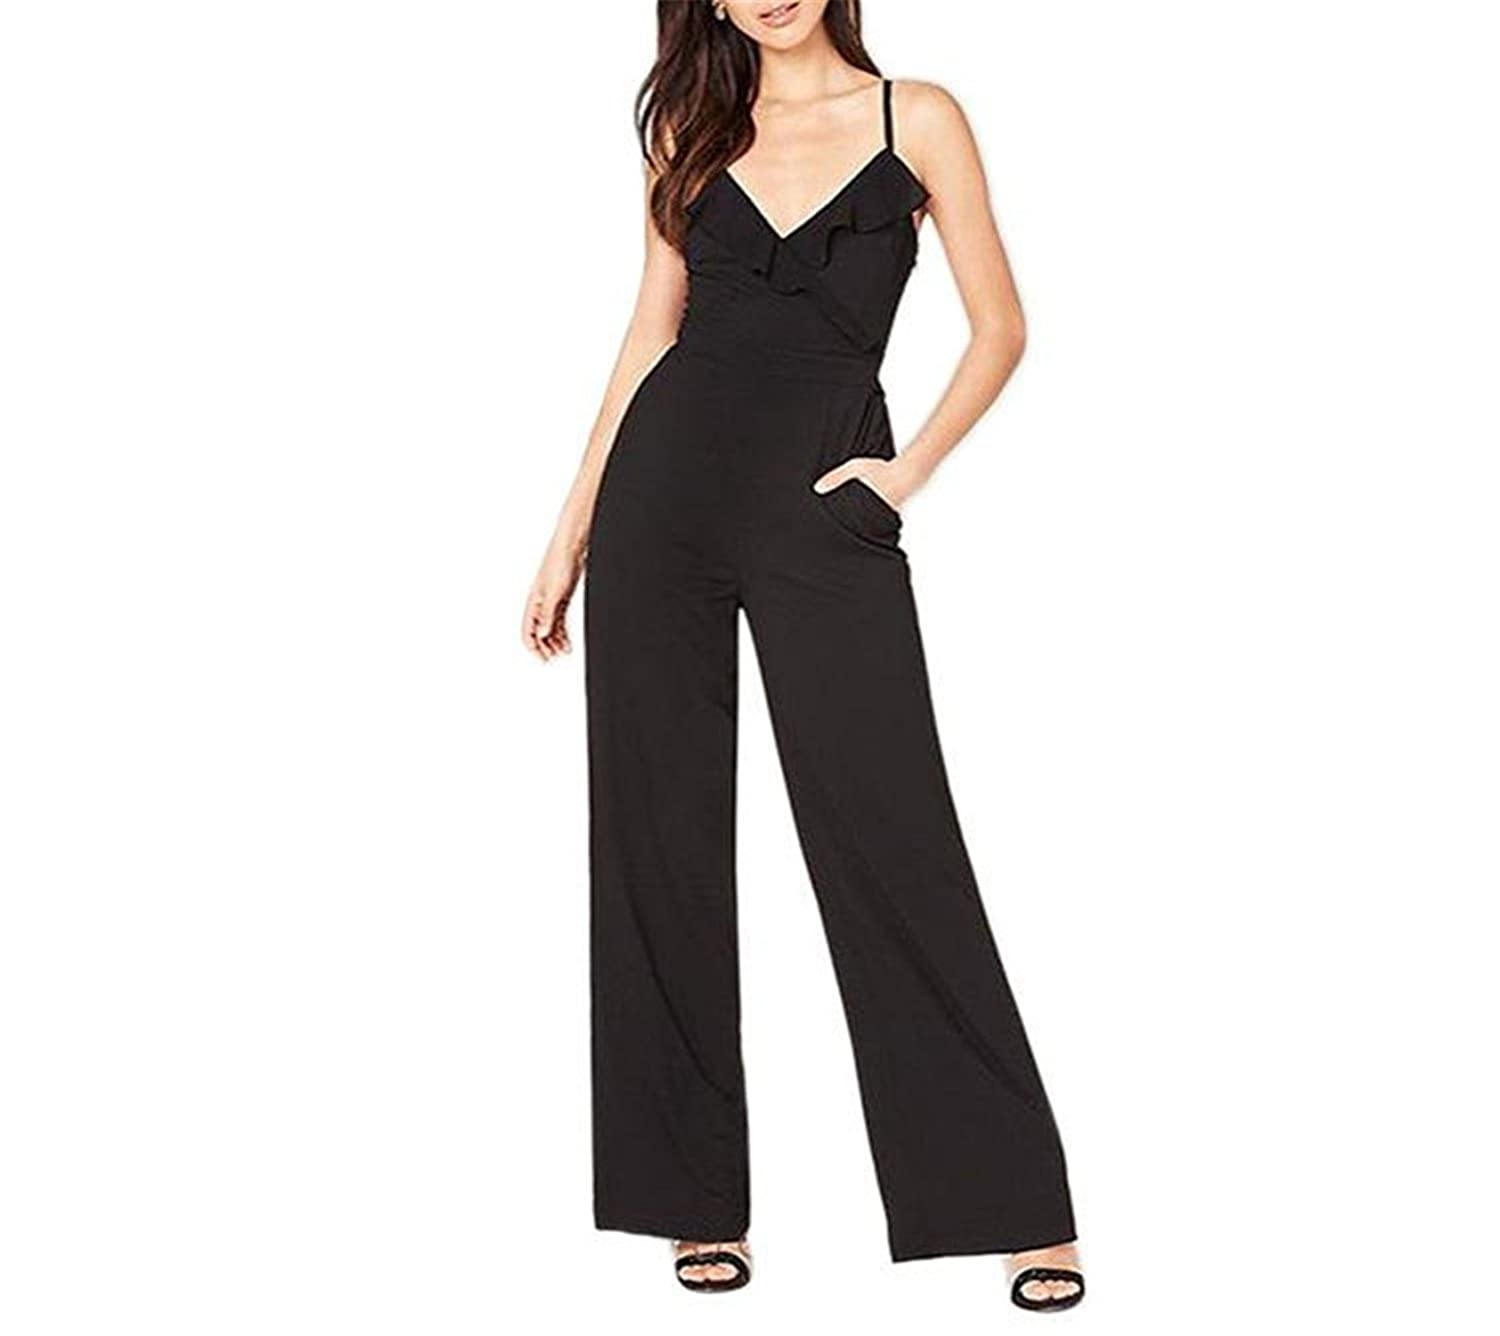 Woodin Fashion 2017 Rompers Womens Jumpsuit Overalls Strapruffle Loose Jumpsuits Plus Size